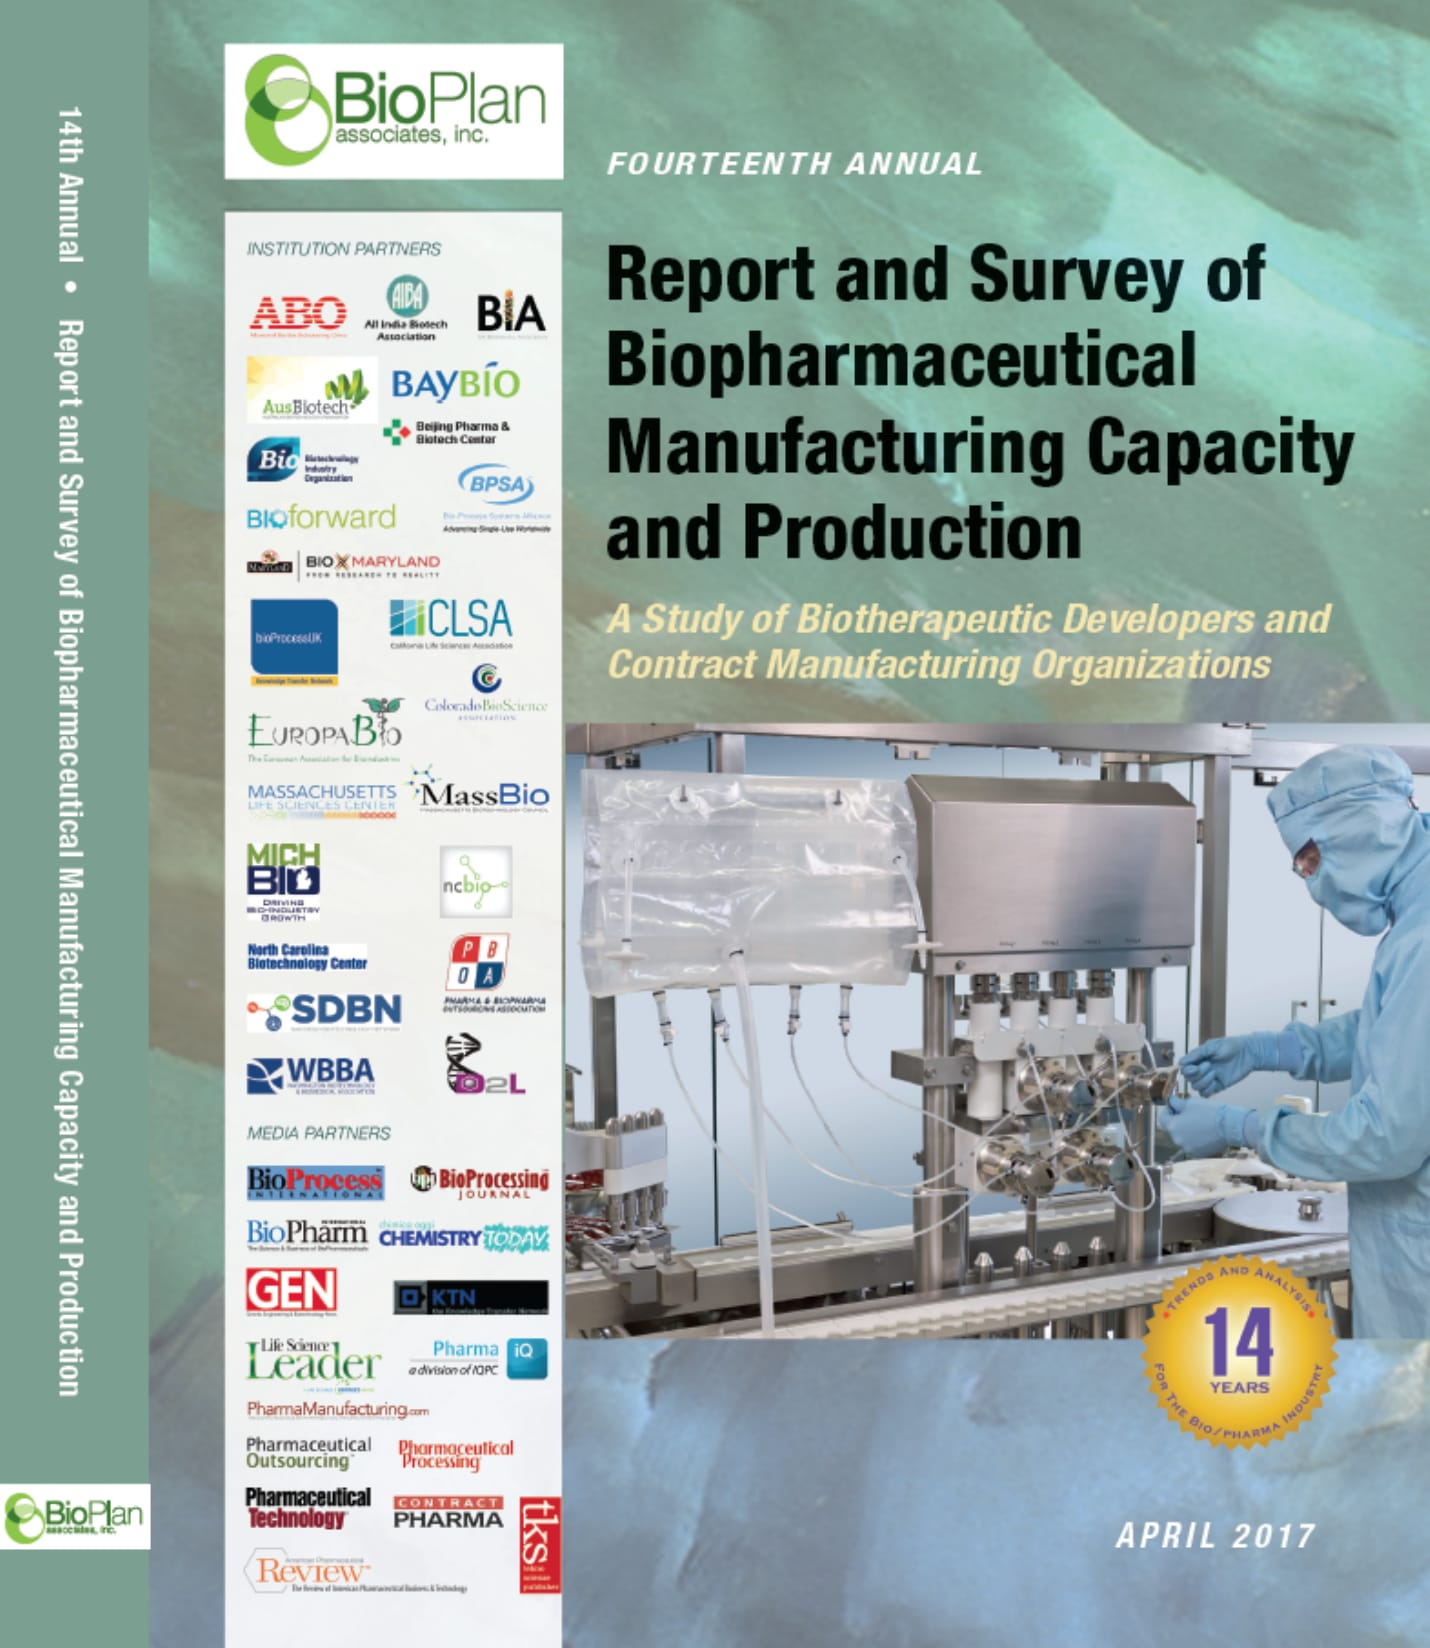 Biopharma Mfg Capacity and Production - BioPlan Associates